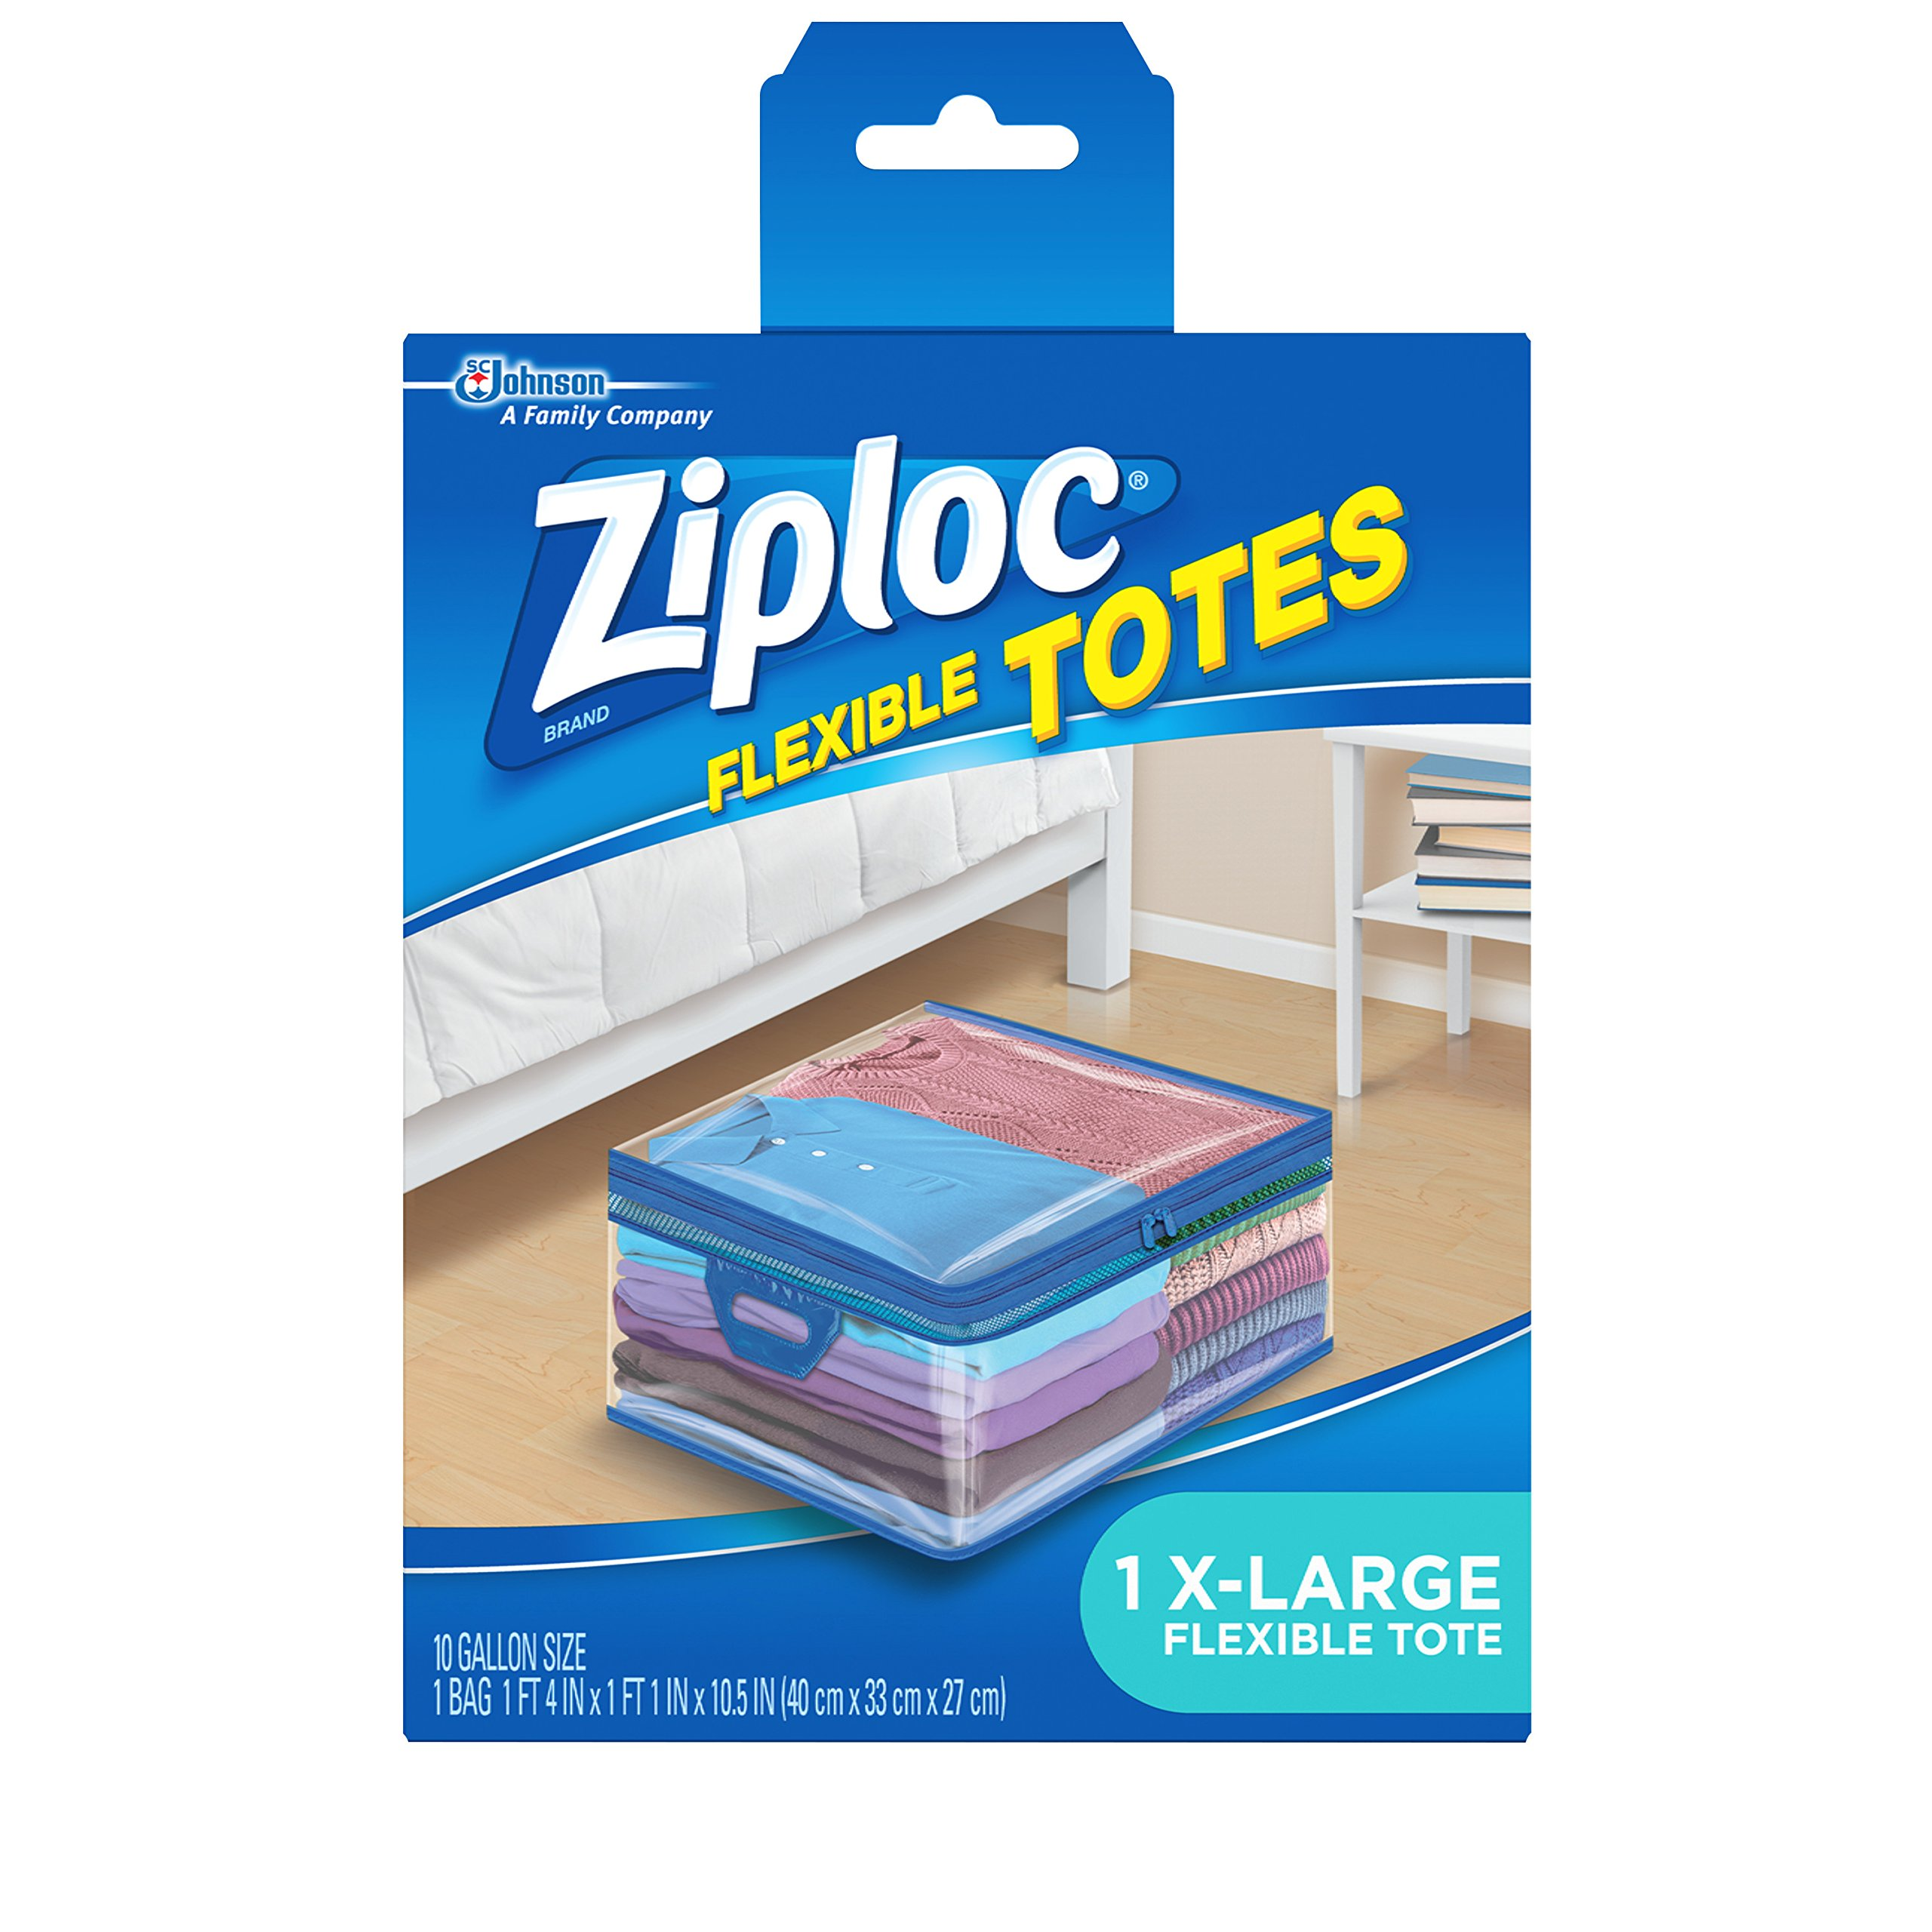 Ziploc Flexible Totes  X-Large (Pack of 4) by Ziploc